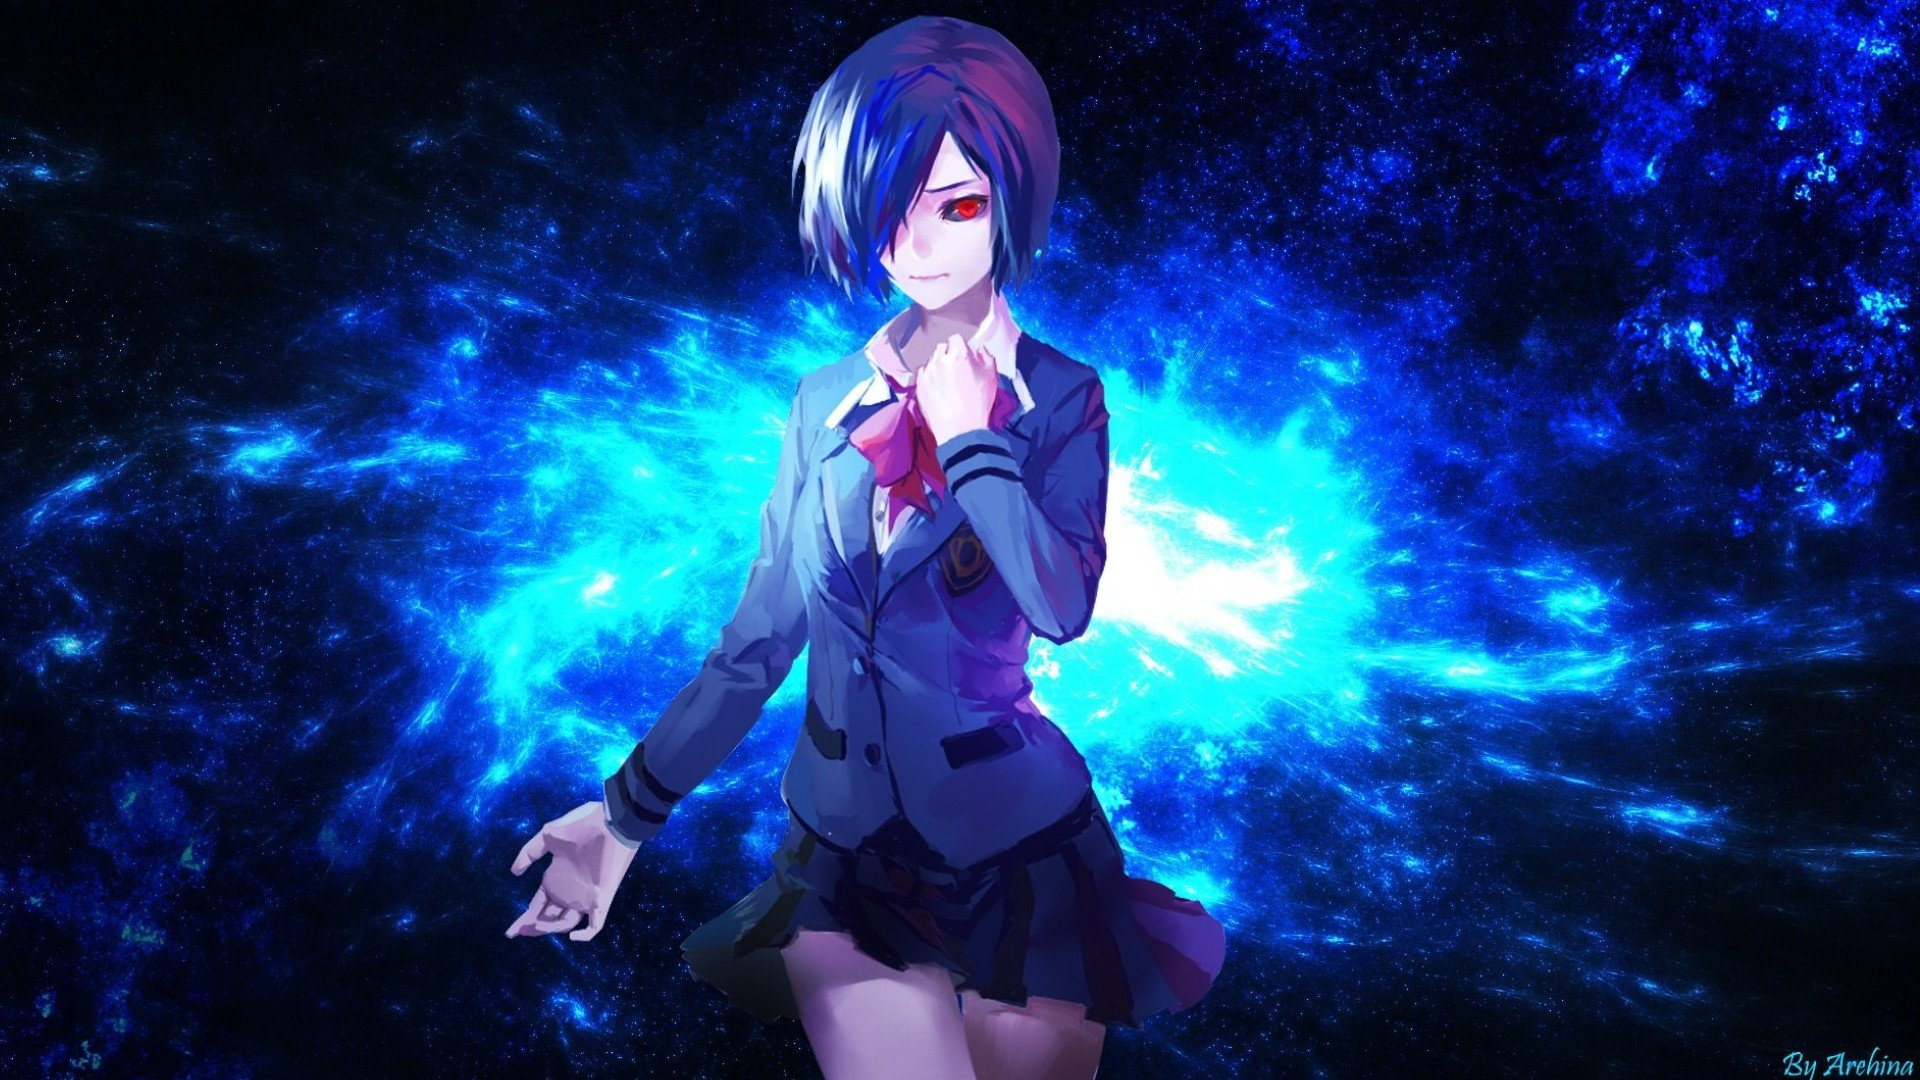 Download full hd 1080p Touka Kirishima PC background ID:150058 for free